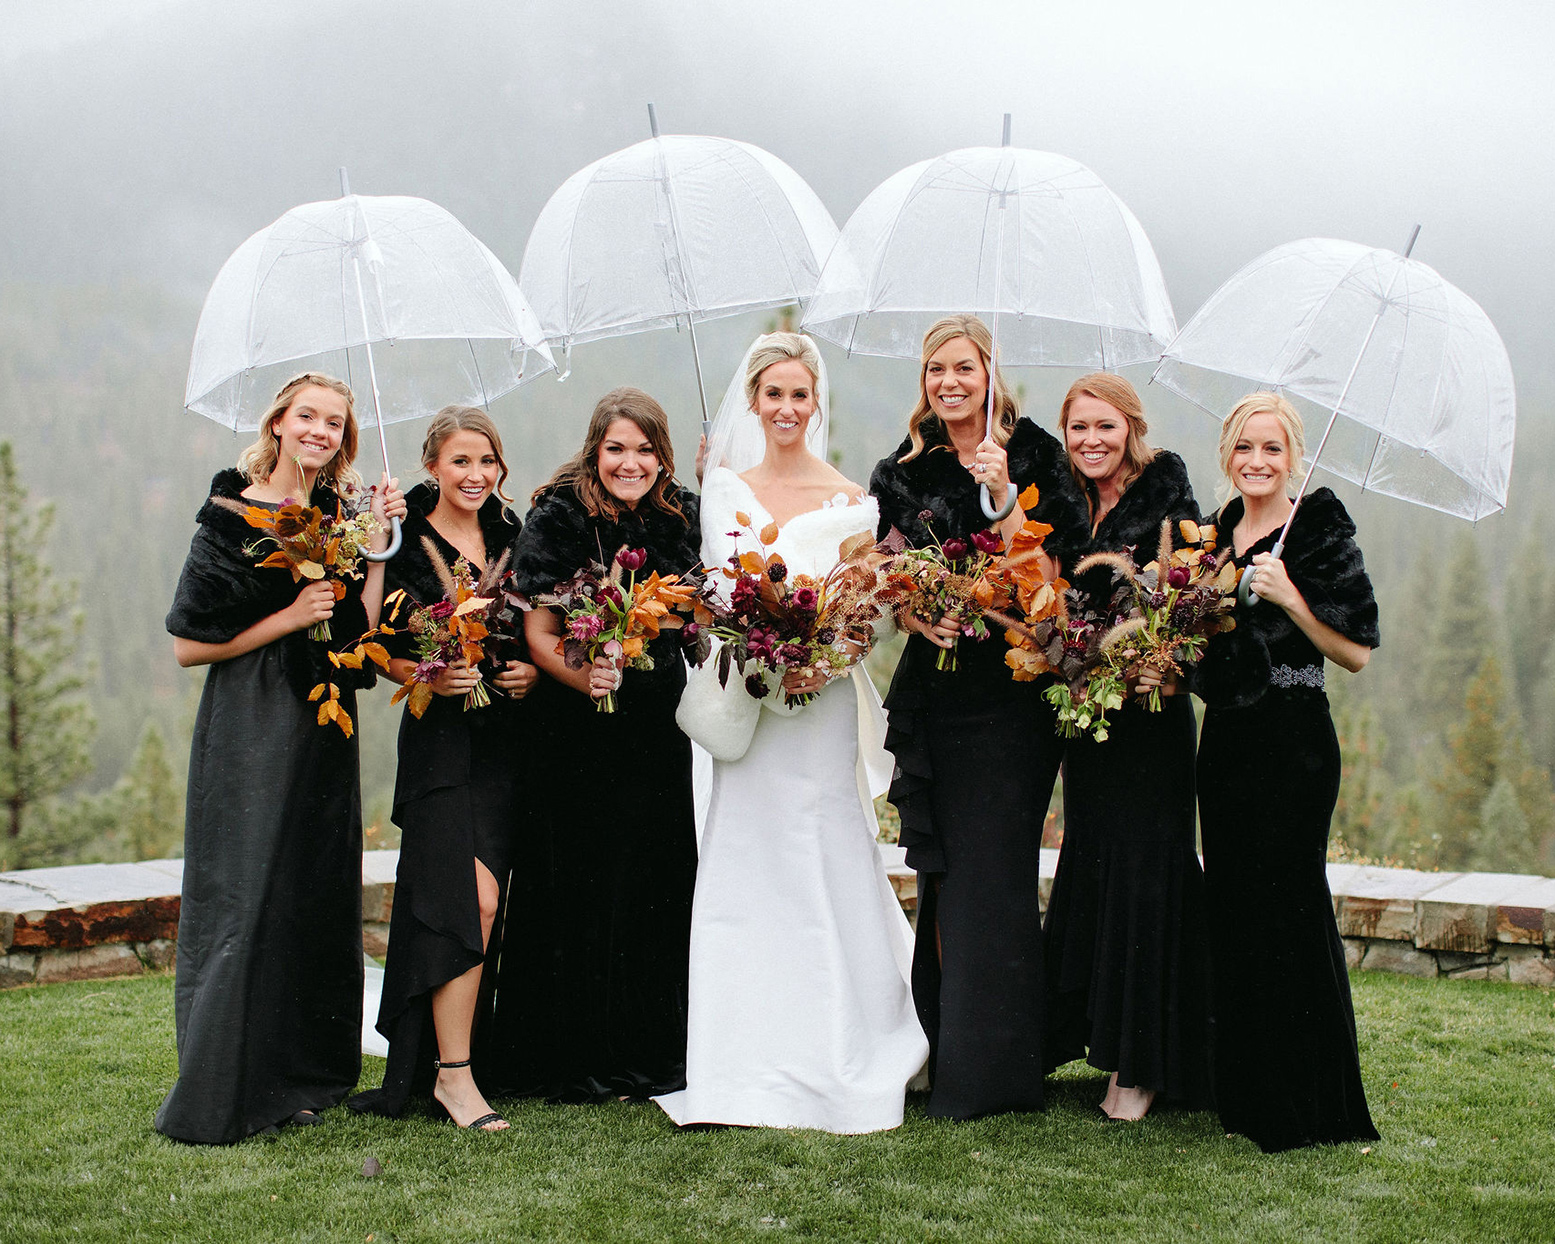 clare tim wedding bridesmaids in black with clear umbrellas